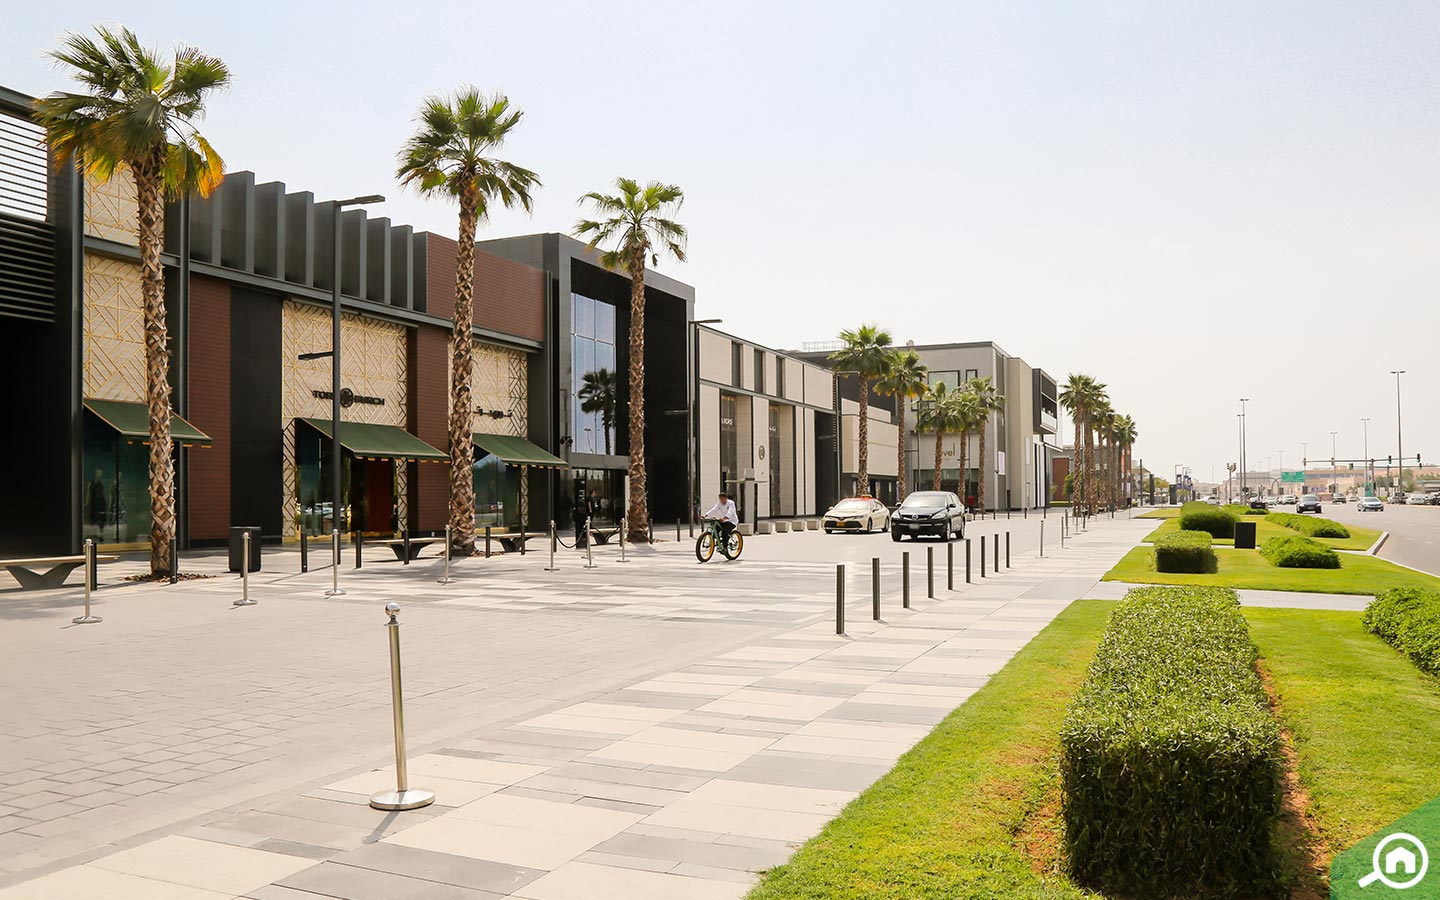 Shopping is among the best things to do in City Walk Dubai